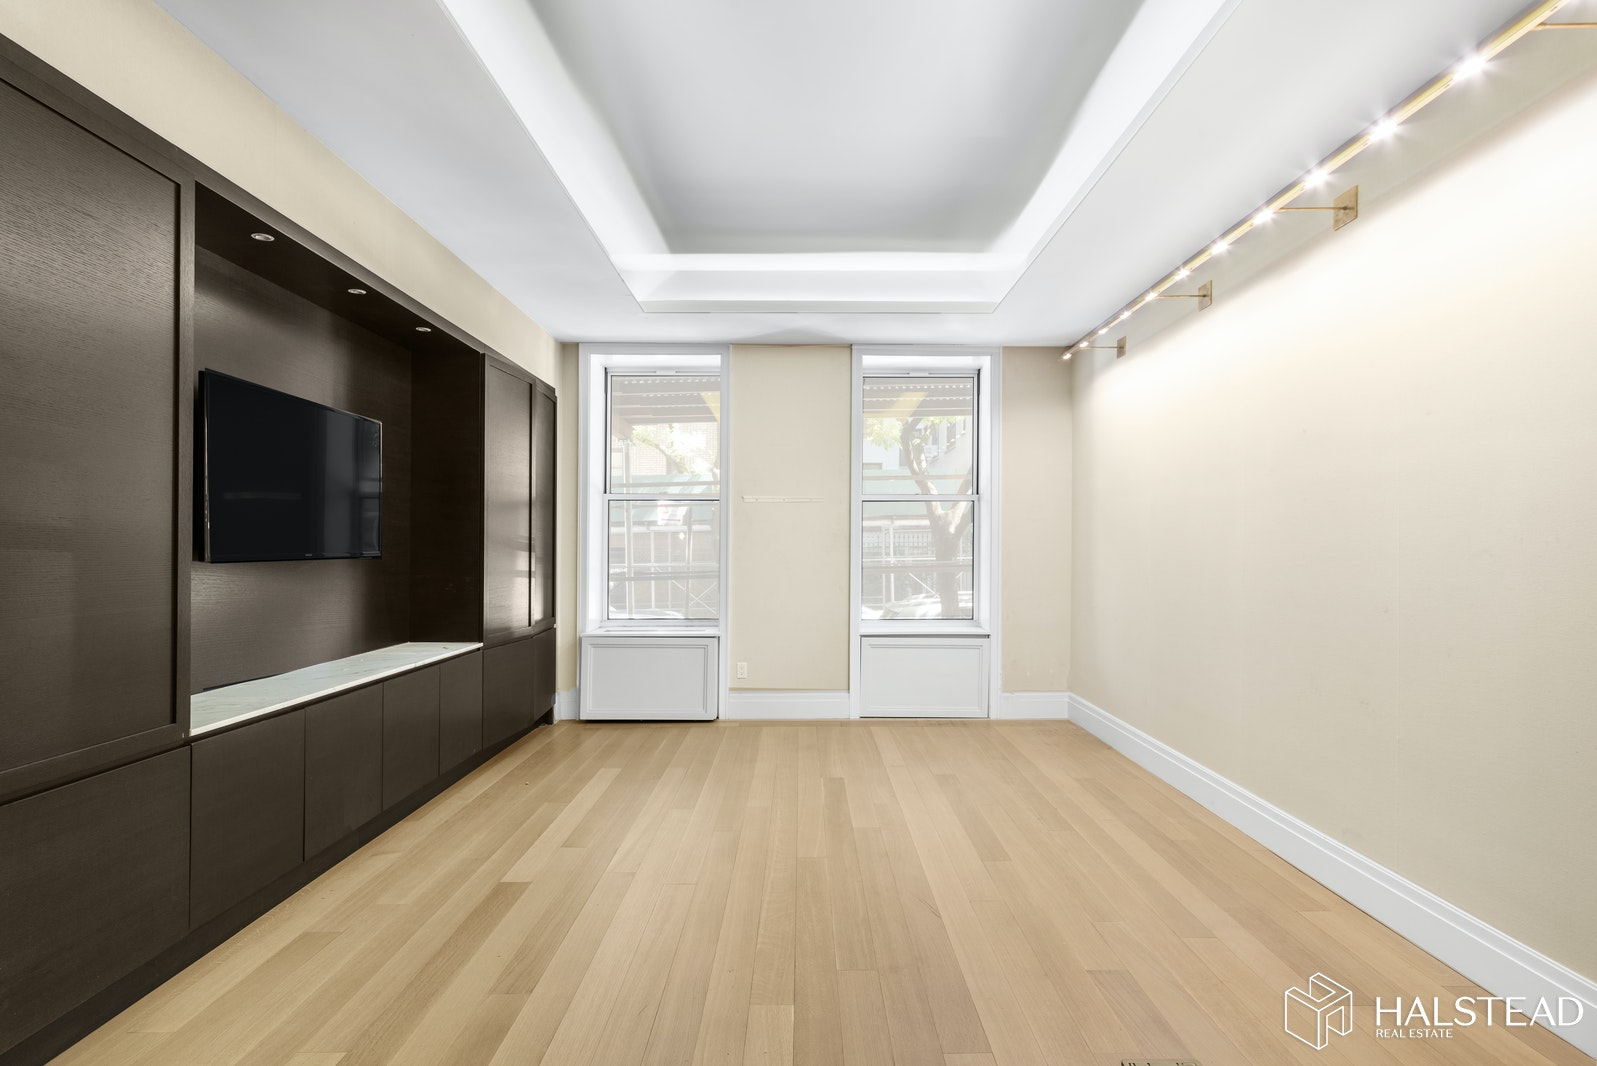 498 West End Avenue 1c, Upper West Side, NYC, 10024, $2,250,000, Property For Sale, Halstead Real Estate, Photo 2